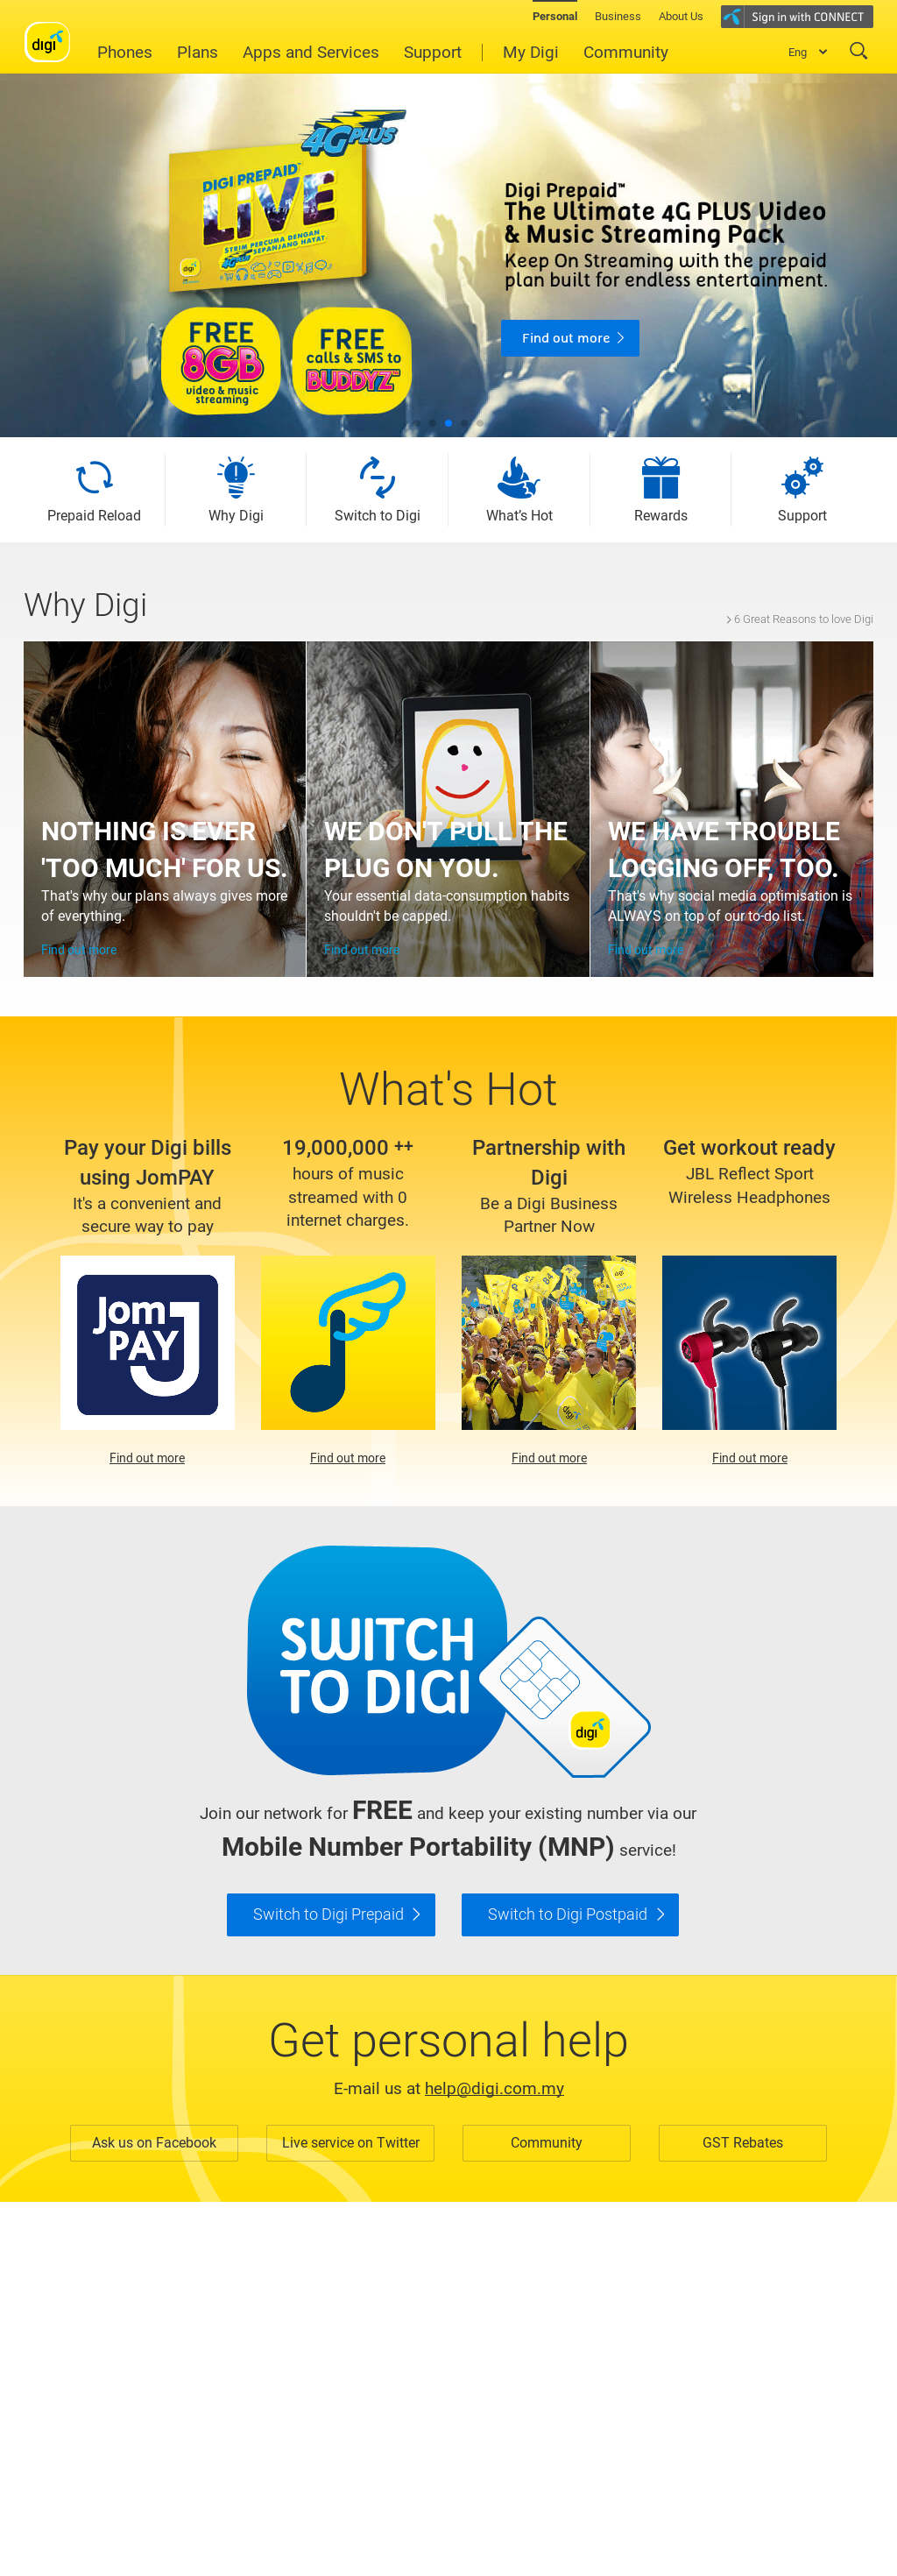 DiGi Competitors, Revenue and Employees - Owler Company Profile